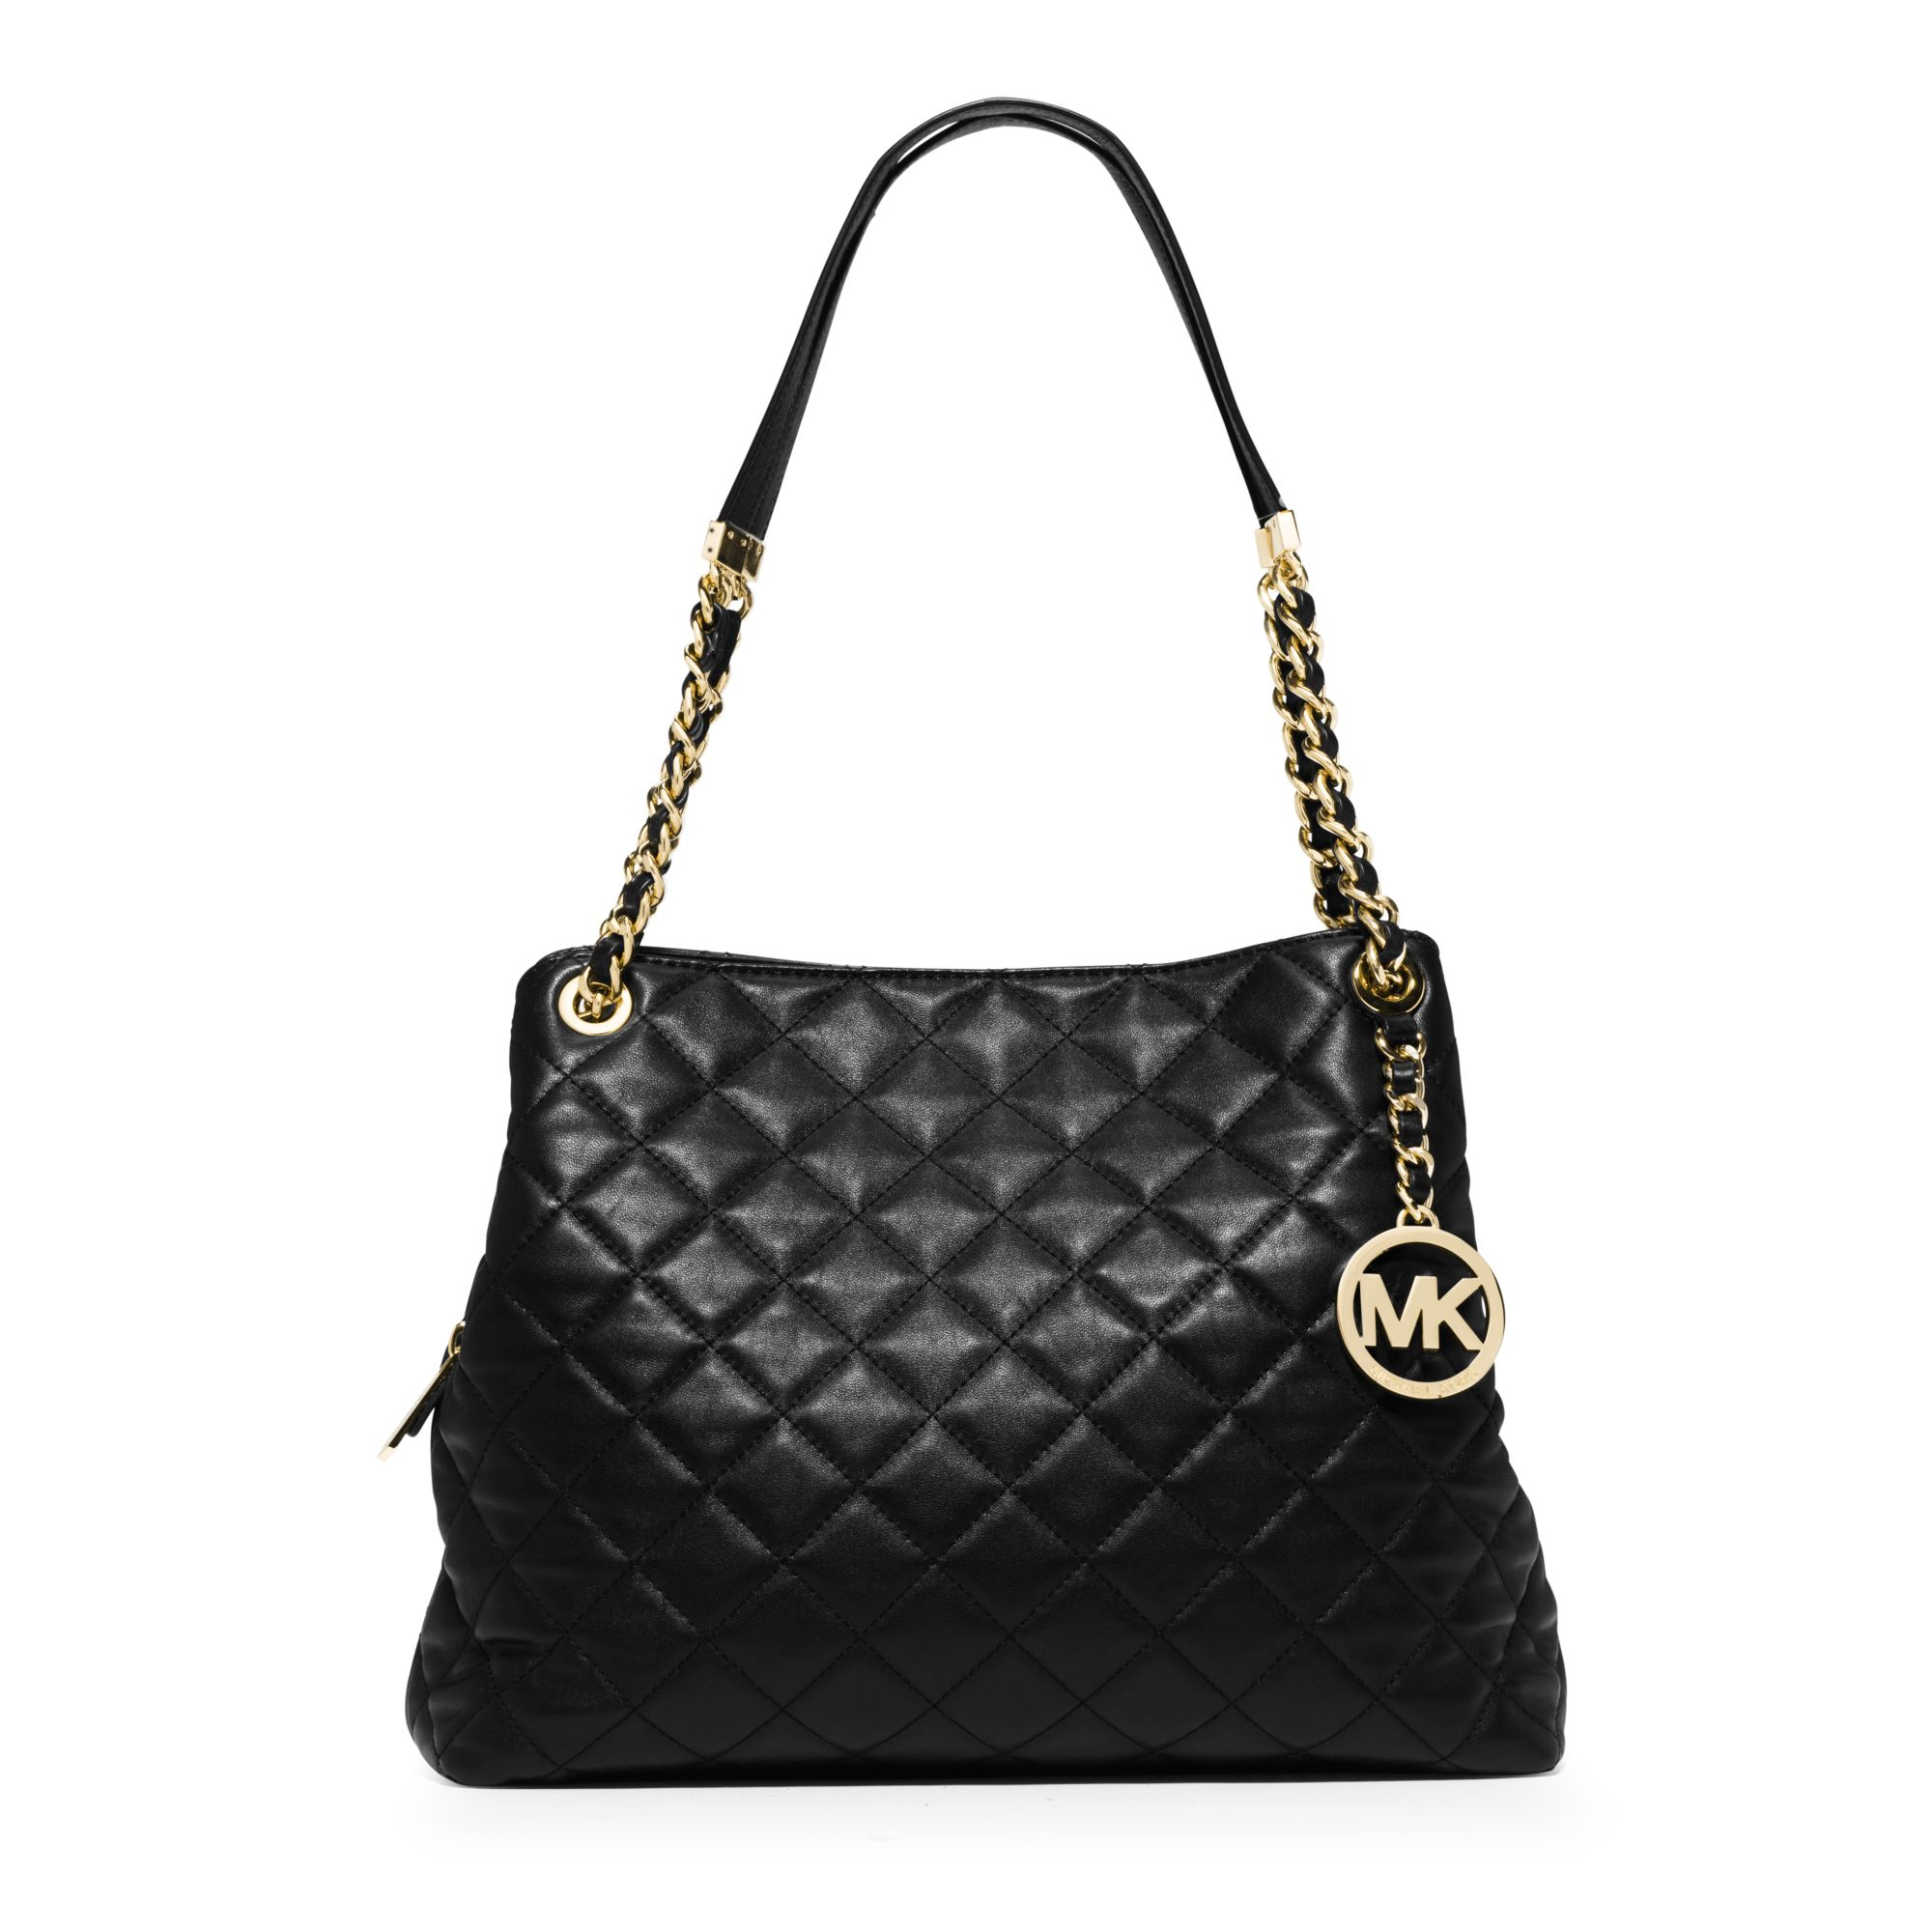 9fe558565b02 Lyst - Michael Kors Susannah Large Quilted-Leather Shoulder Bag in Black